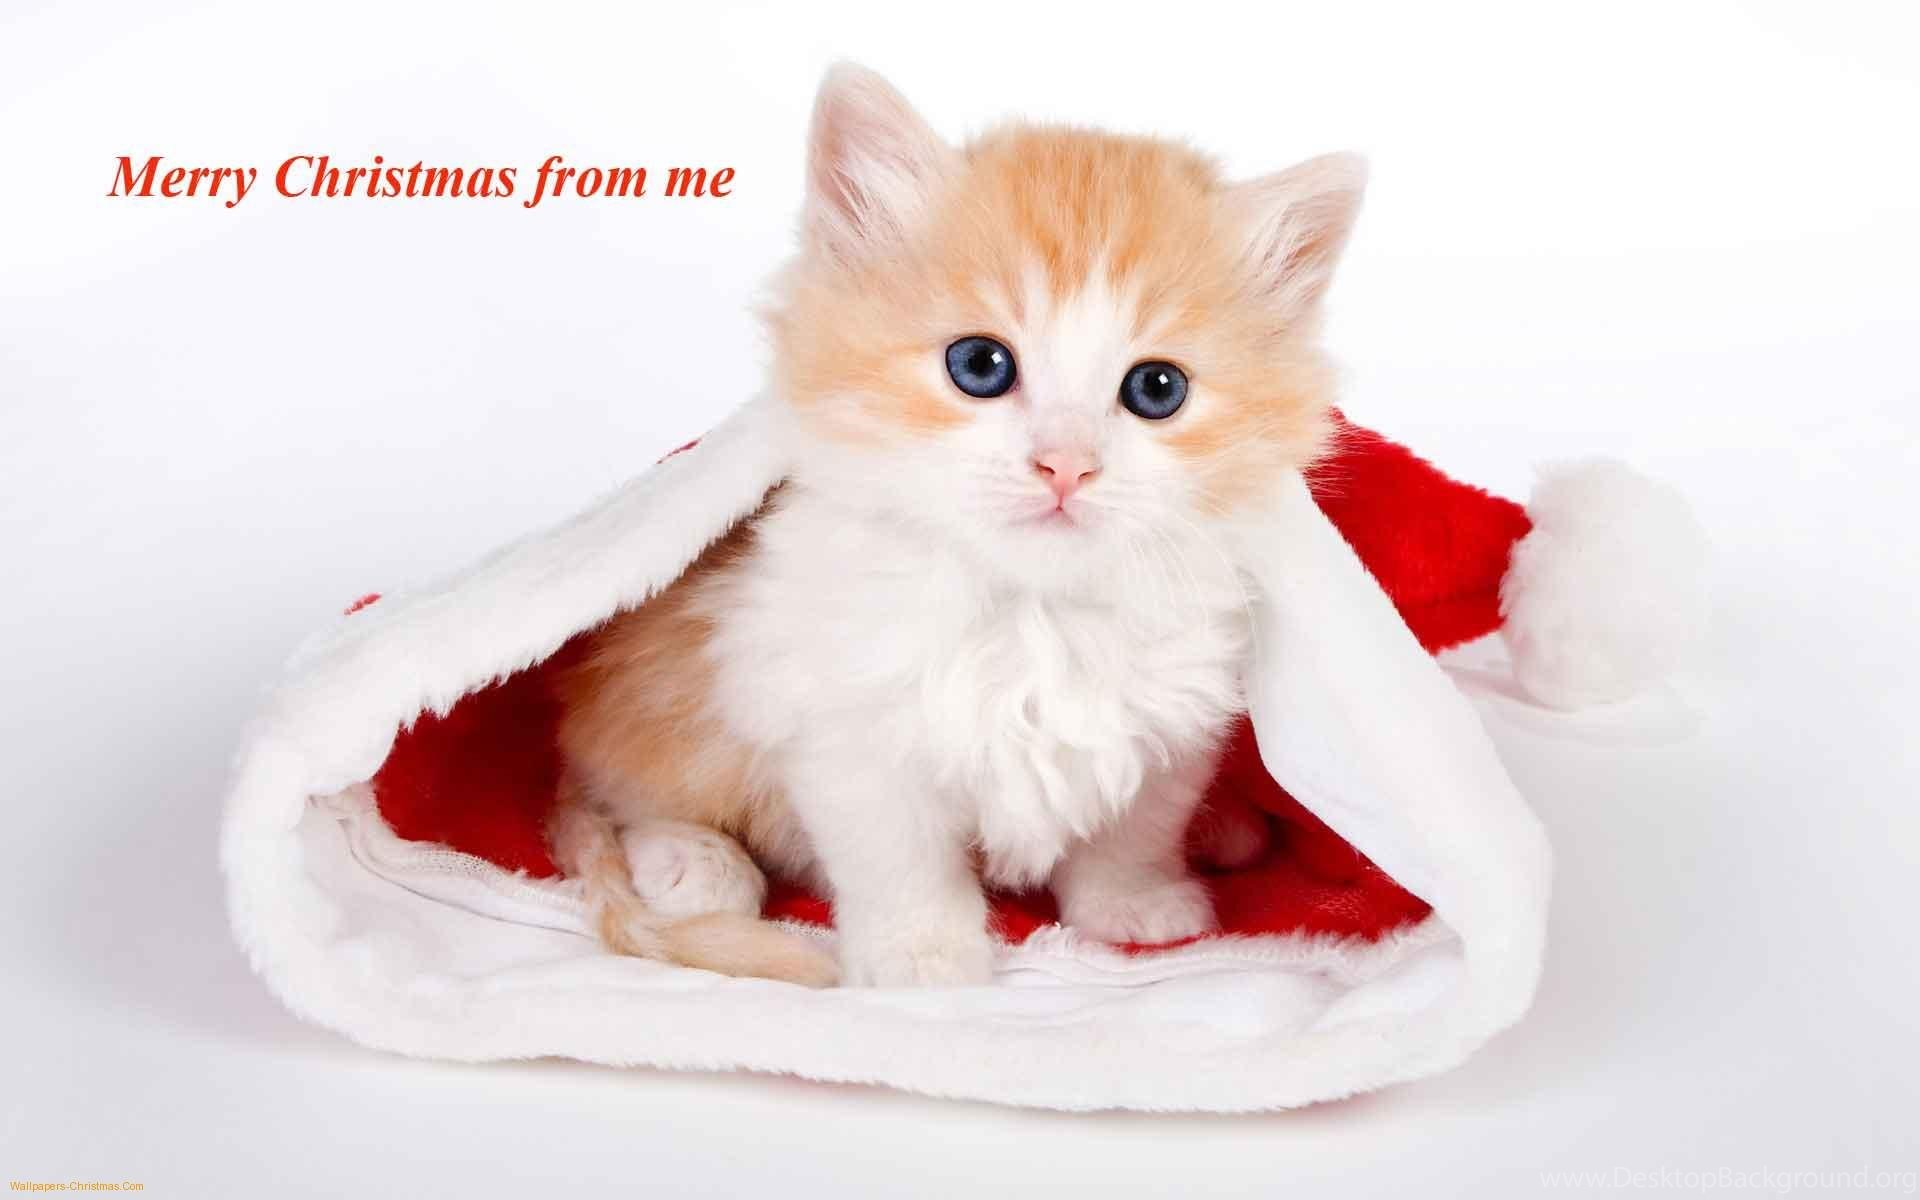 merry christmas 2015 collection of xmas puppies and kittens desktop